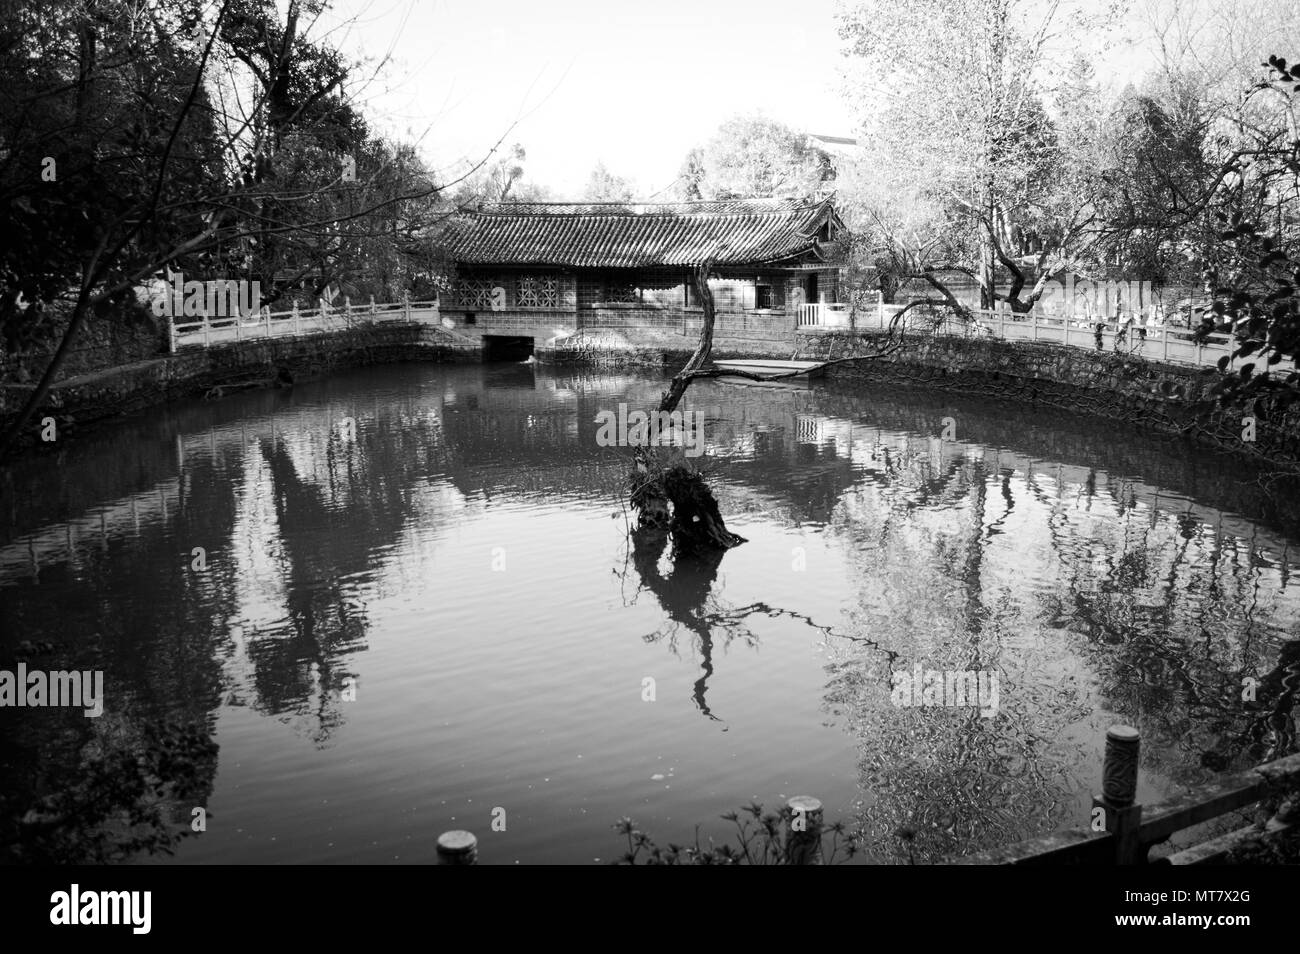 Isolated tree in the Chinese park (Old Town of Lijiang, Yunnan, China) - Stock Image